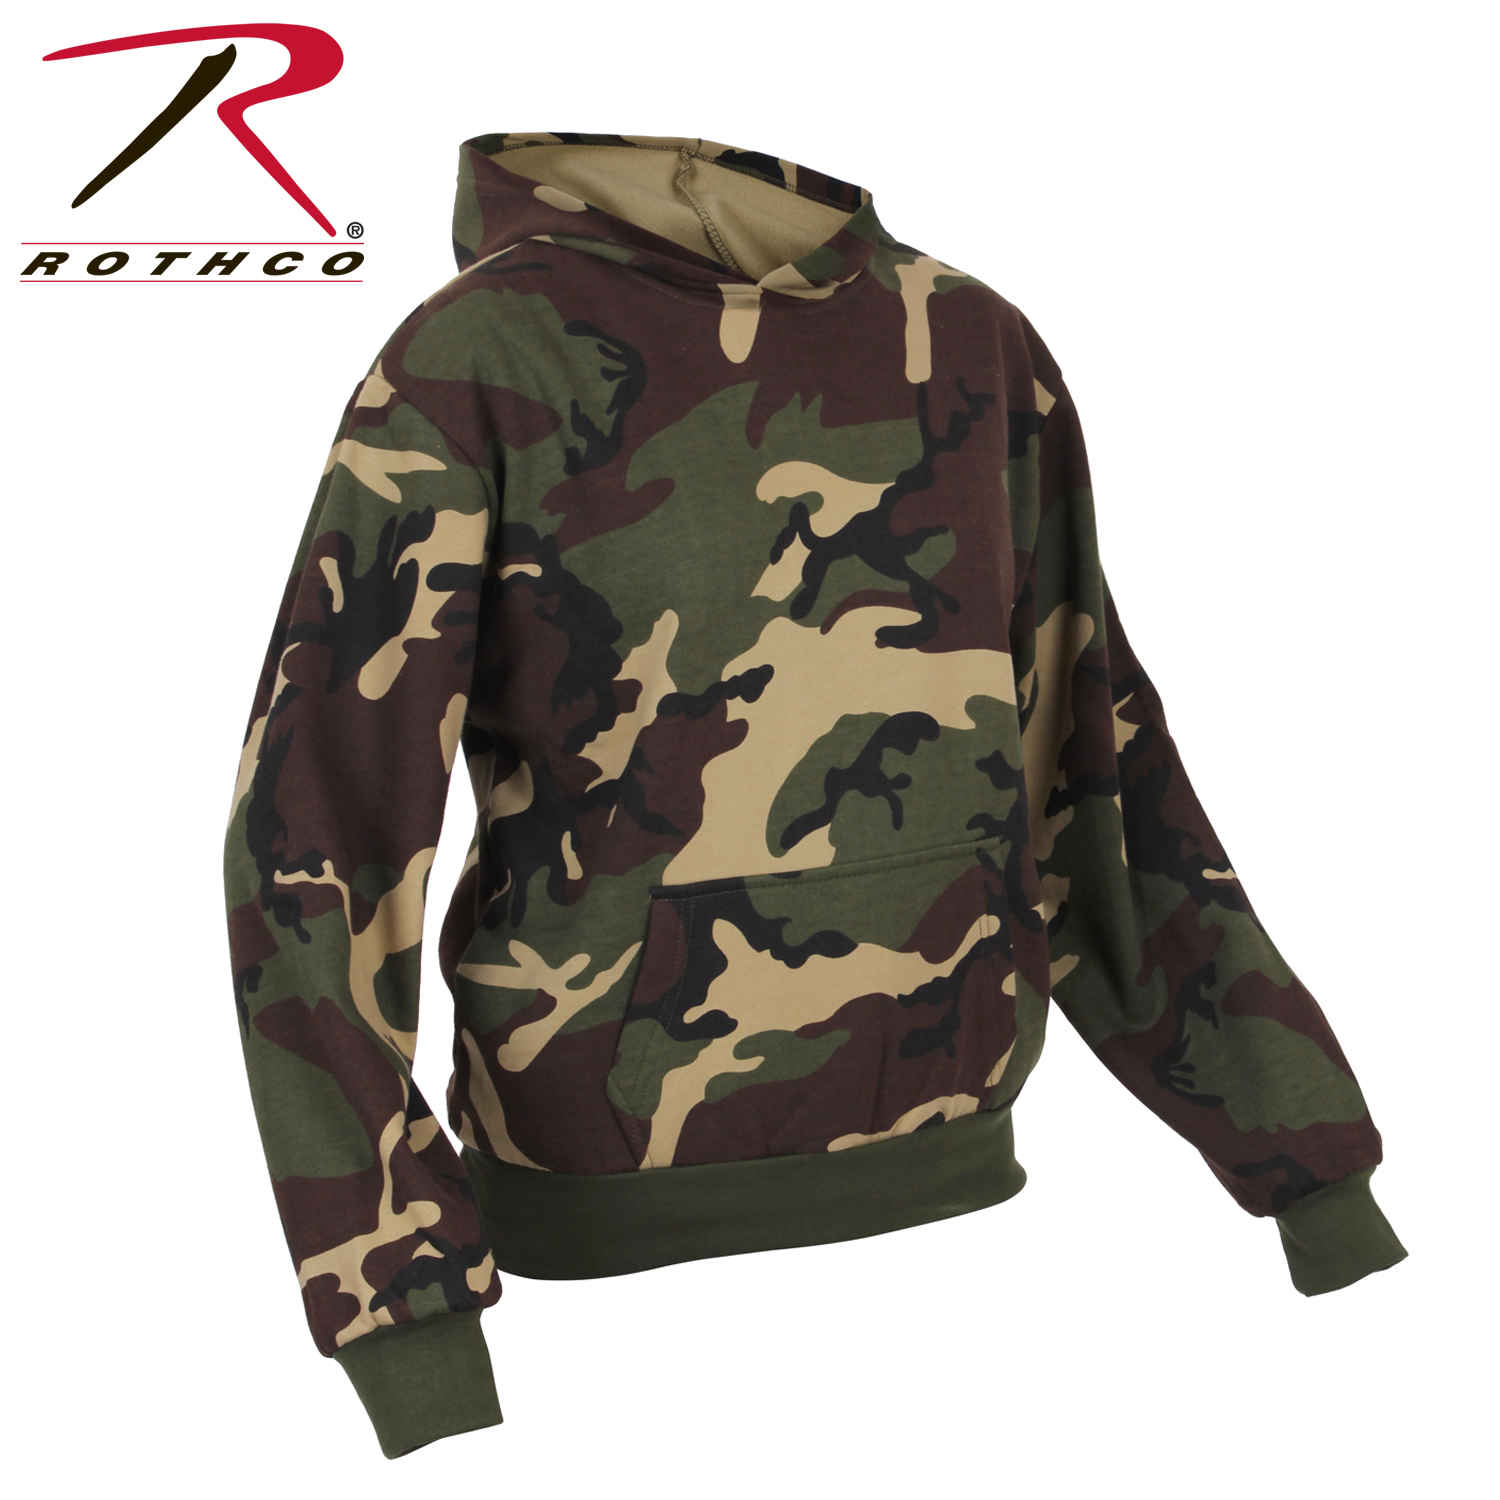 Find wholesale camo hoodies online from China camo hoodies wholesalers and dropshippers. DHgate helps you get high quality discount camo hoodies at bulk prices. hereuloadu5.ga provides camo hoodies items from China top selected Men's Hoodies & Sweatshirts, Men's Clothing, Apparel suppliers at wholesale prices with worldwide delivery.